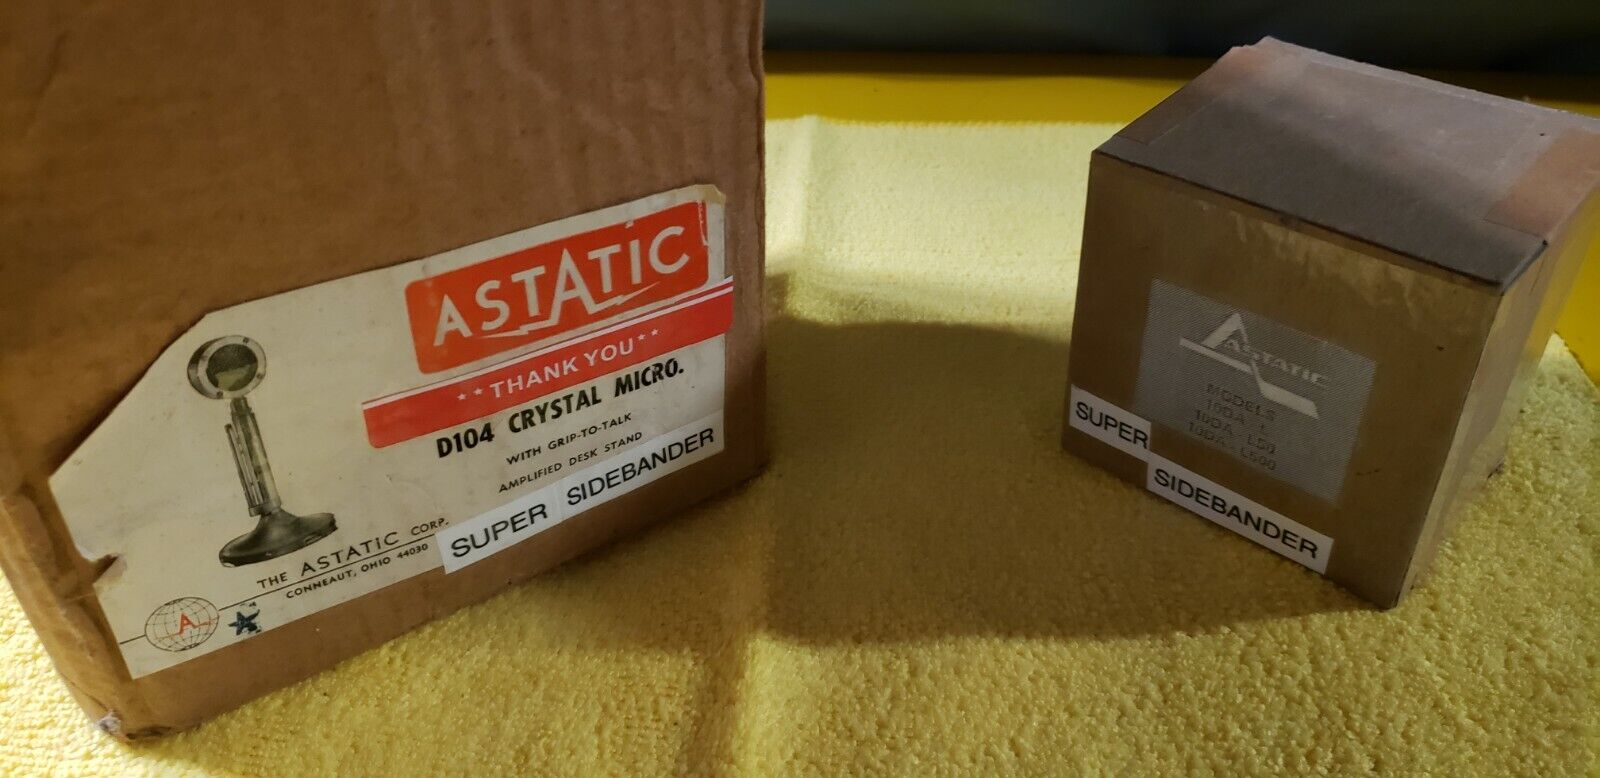 Astatic 10DA HEAD&BASE*REAL SUPER SIDEBANDER*COLLECTORS CHOICE *MAKES U HAPPY 😊. Available Now for 449.00